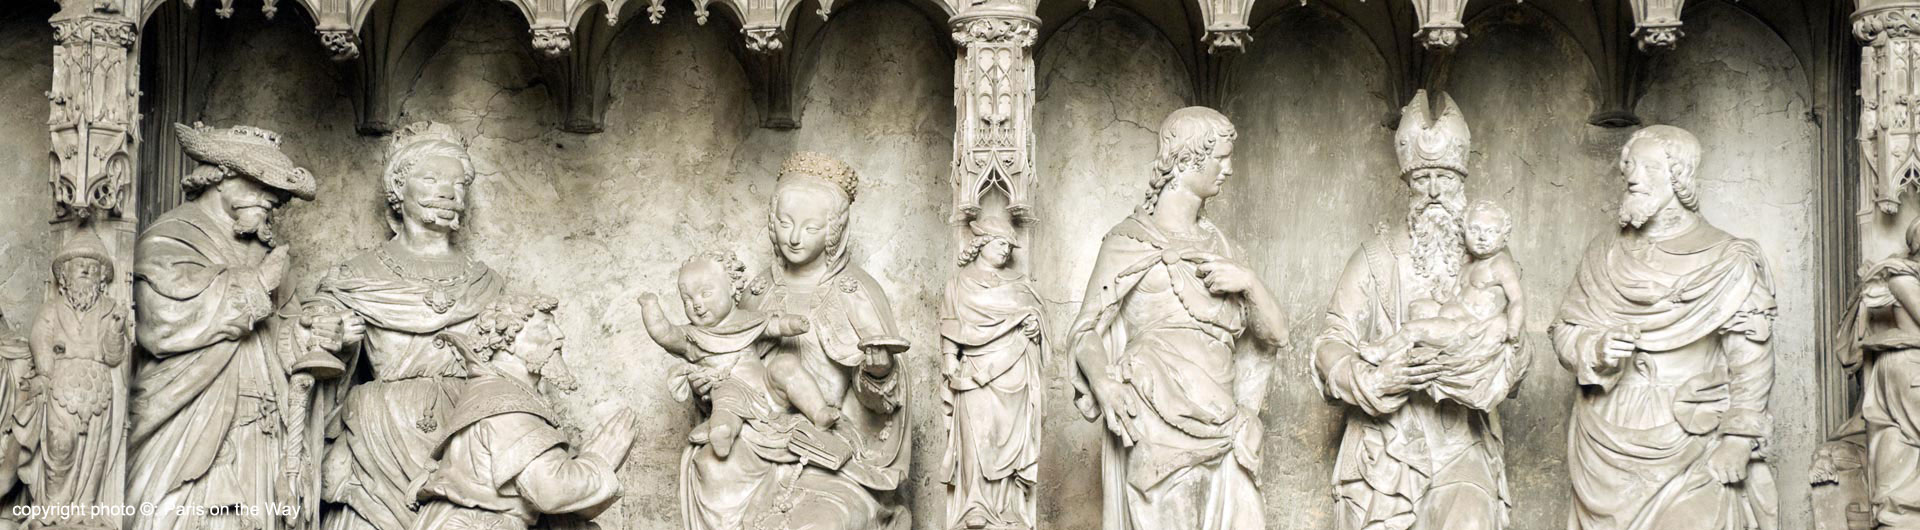 CHARTRES LOW RELIEF SCULPTURE